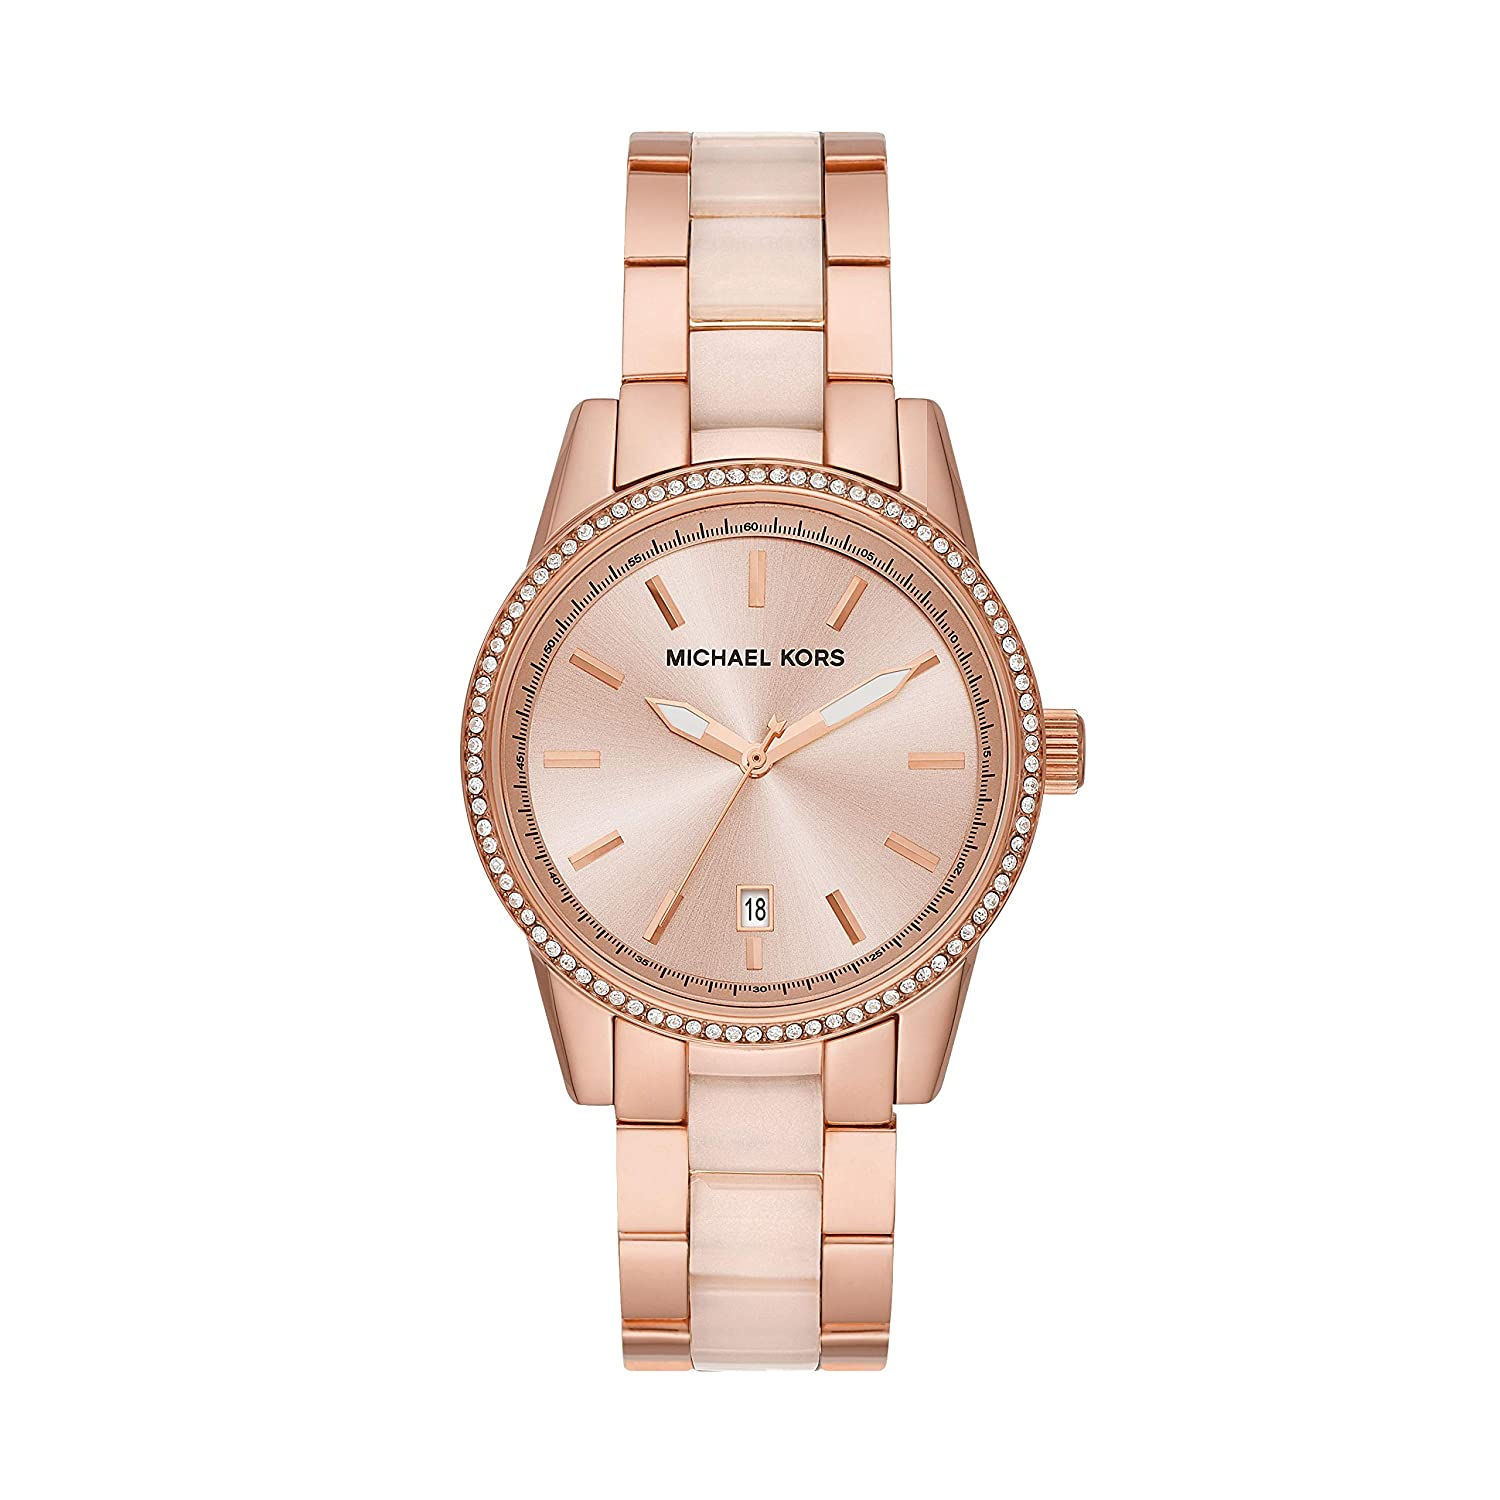 7f86195cb Amazon.com: Michael Kors Women's Ritz Rose Gold Tone Acetate and Stainless  Steel Watch MK6349: Watches